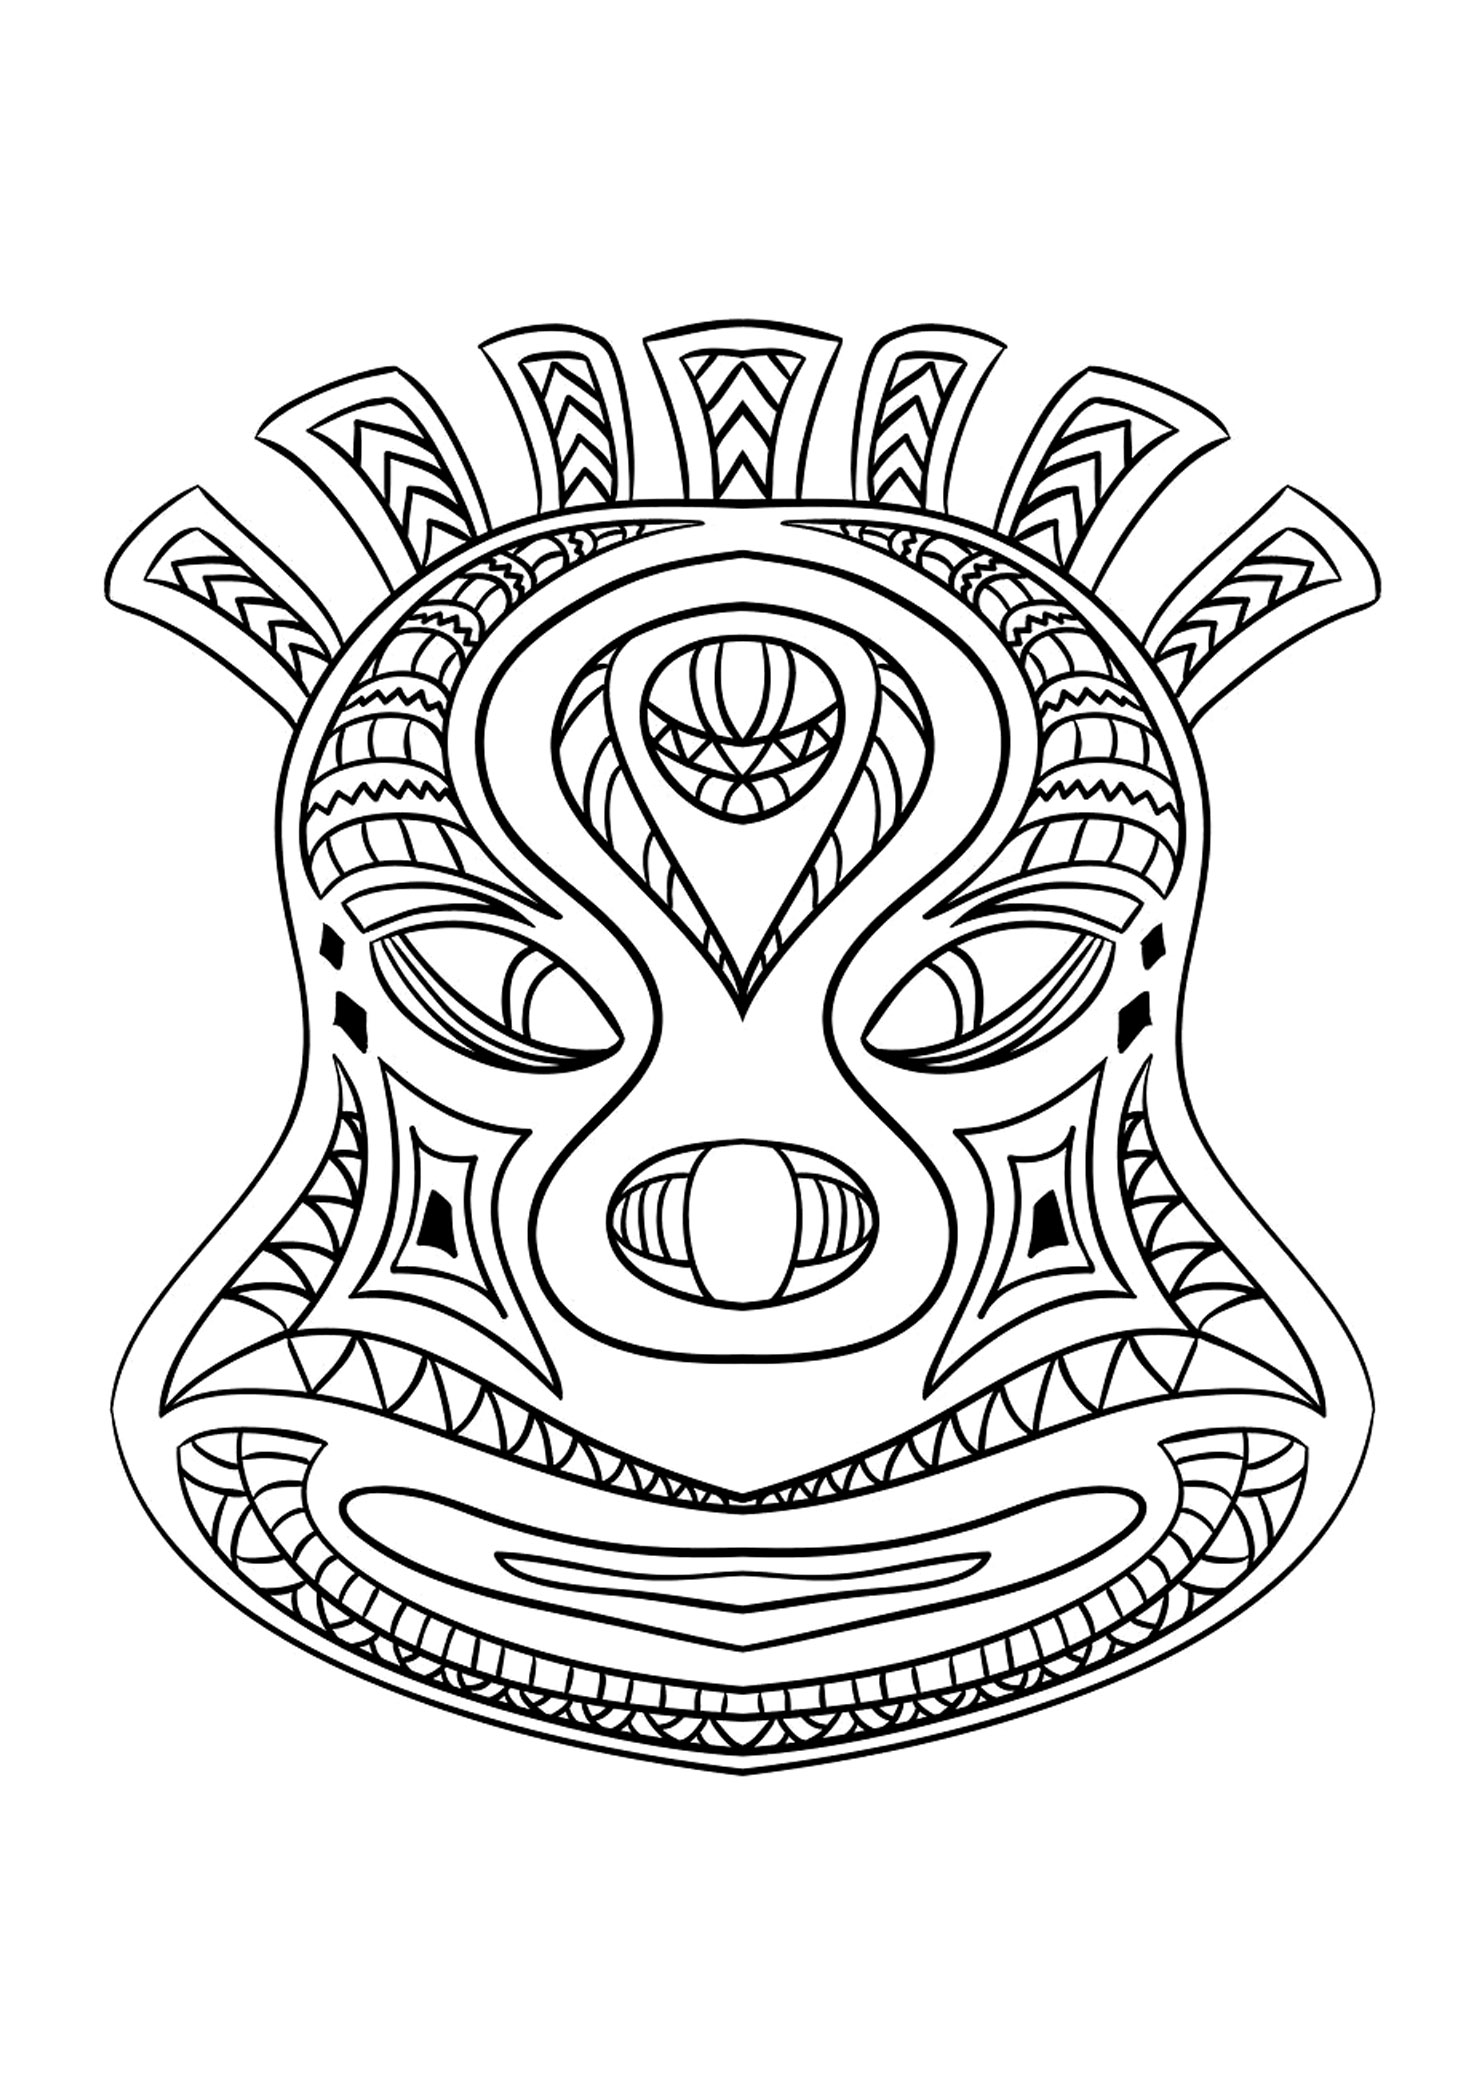 Africa - Coloring Pages for Adults